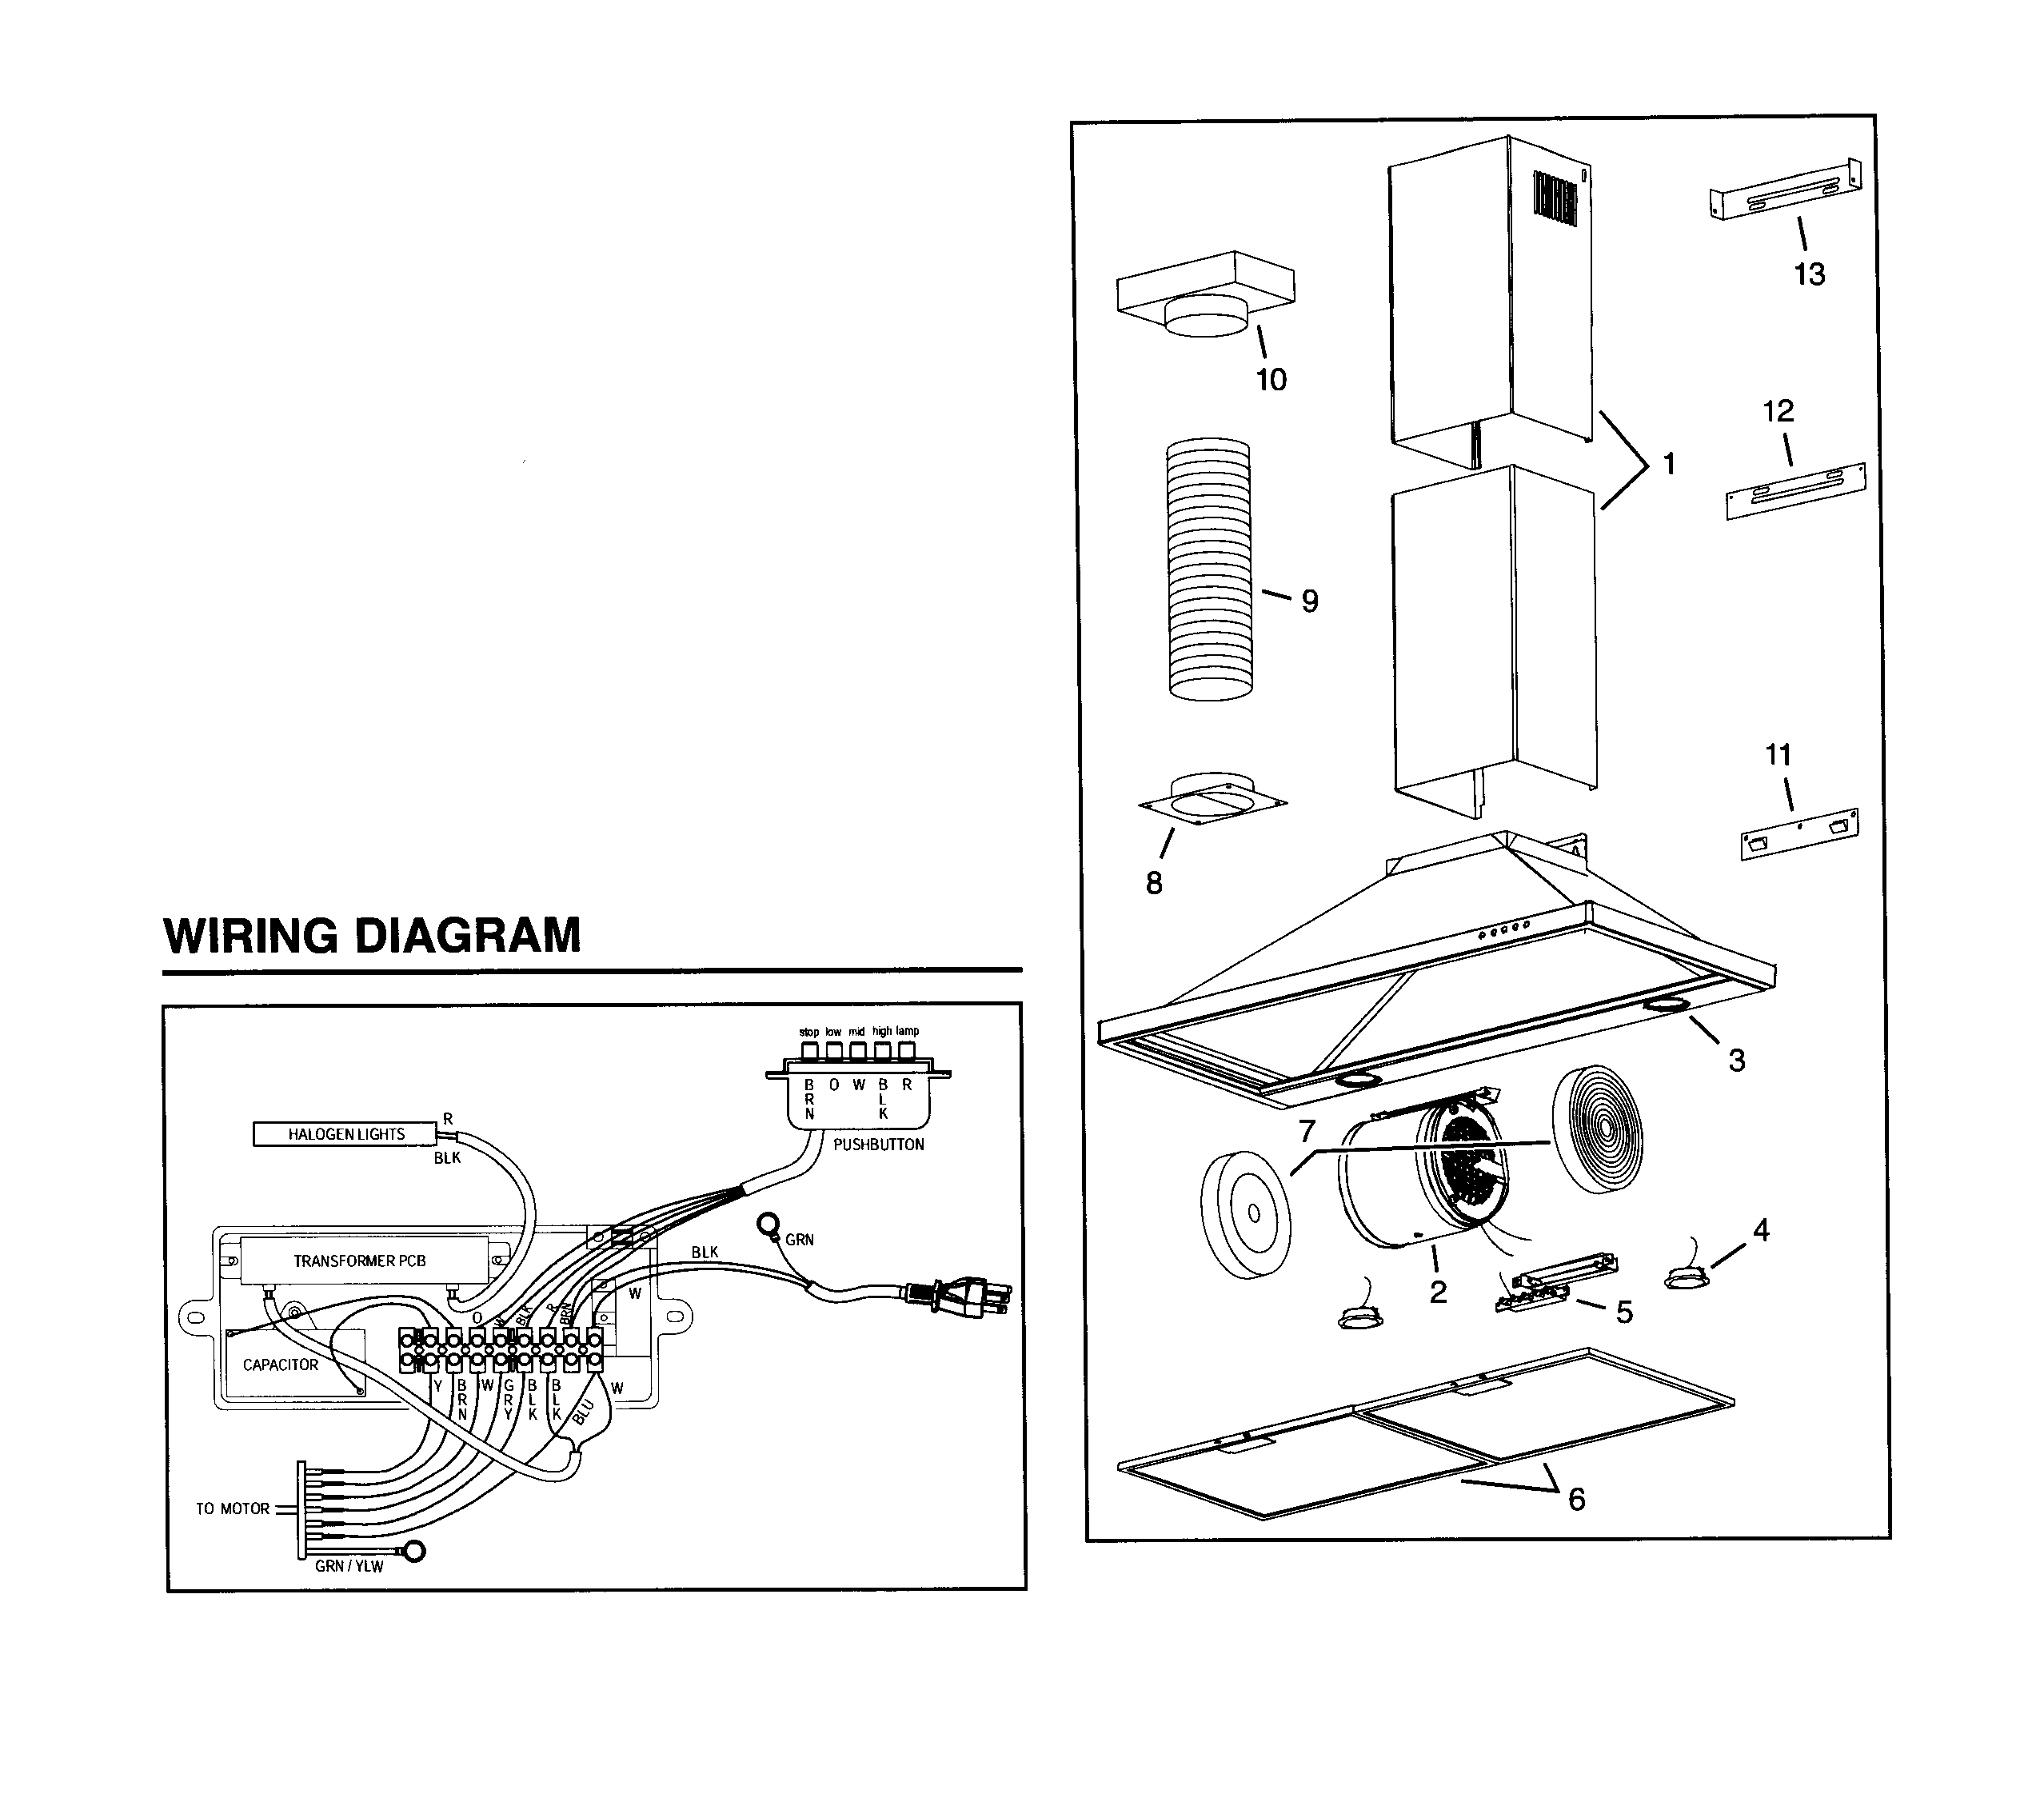 broan ventahood fan wiring diagram   34 wiring diagram images